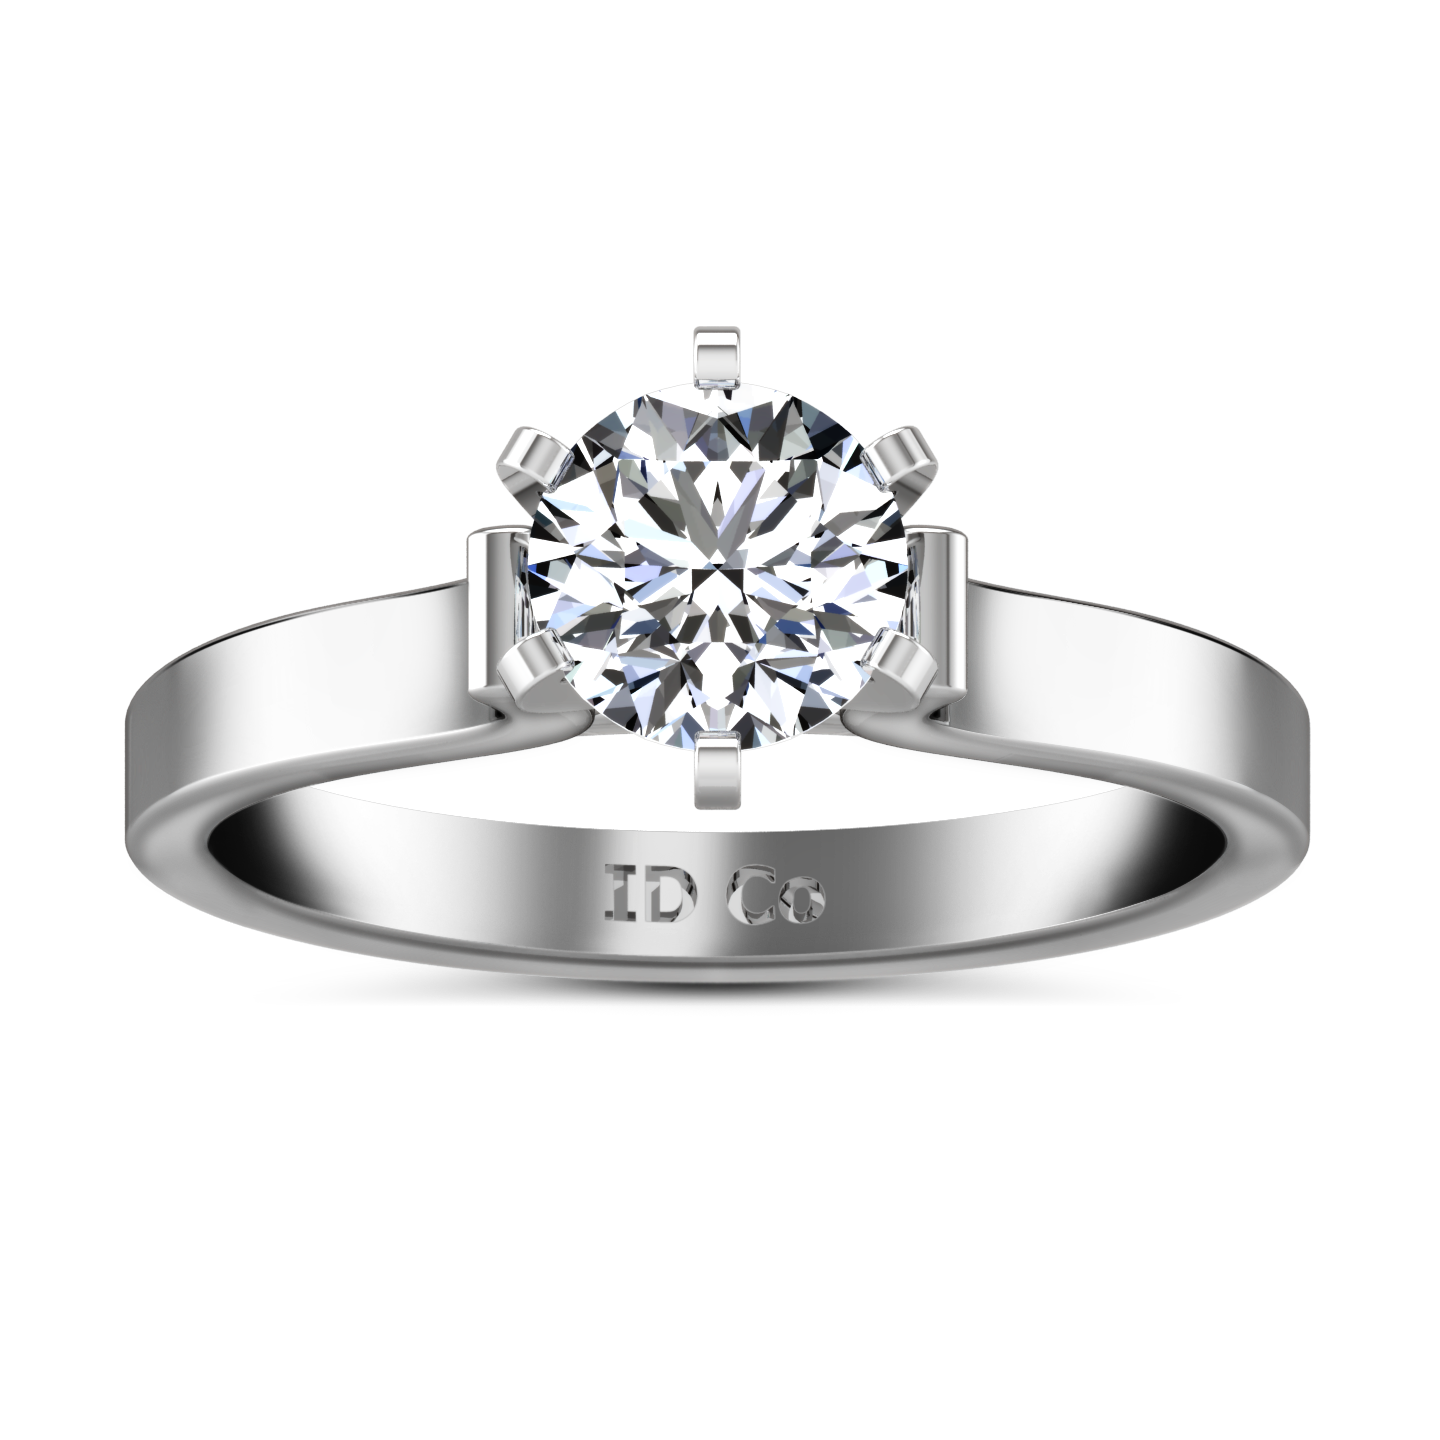 rings engagement diamond diamondland ring setting solitaire jewelry carat